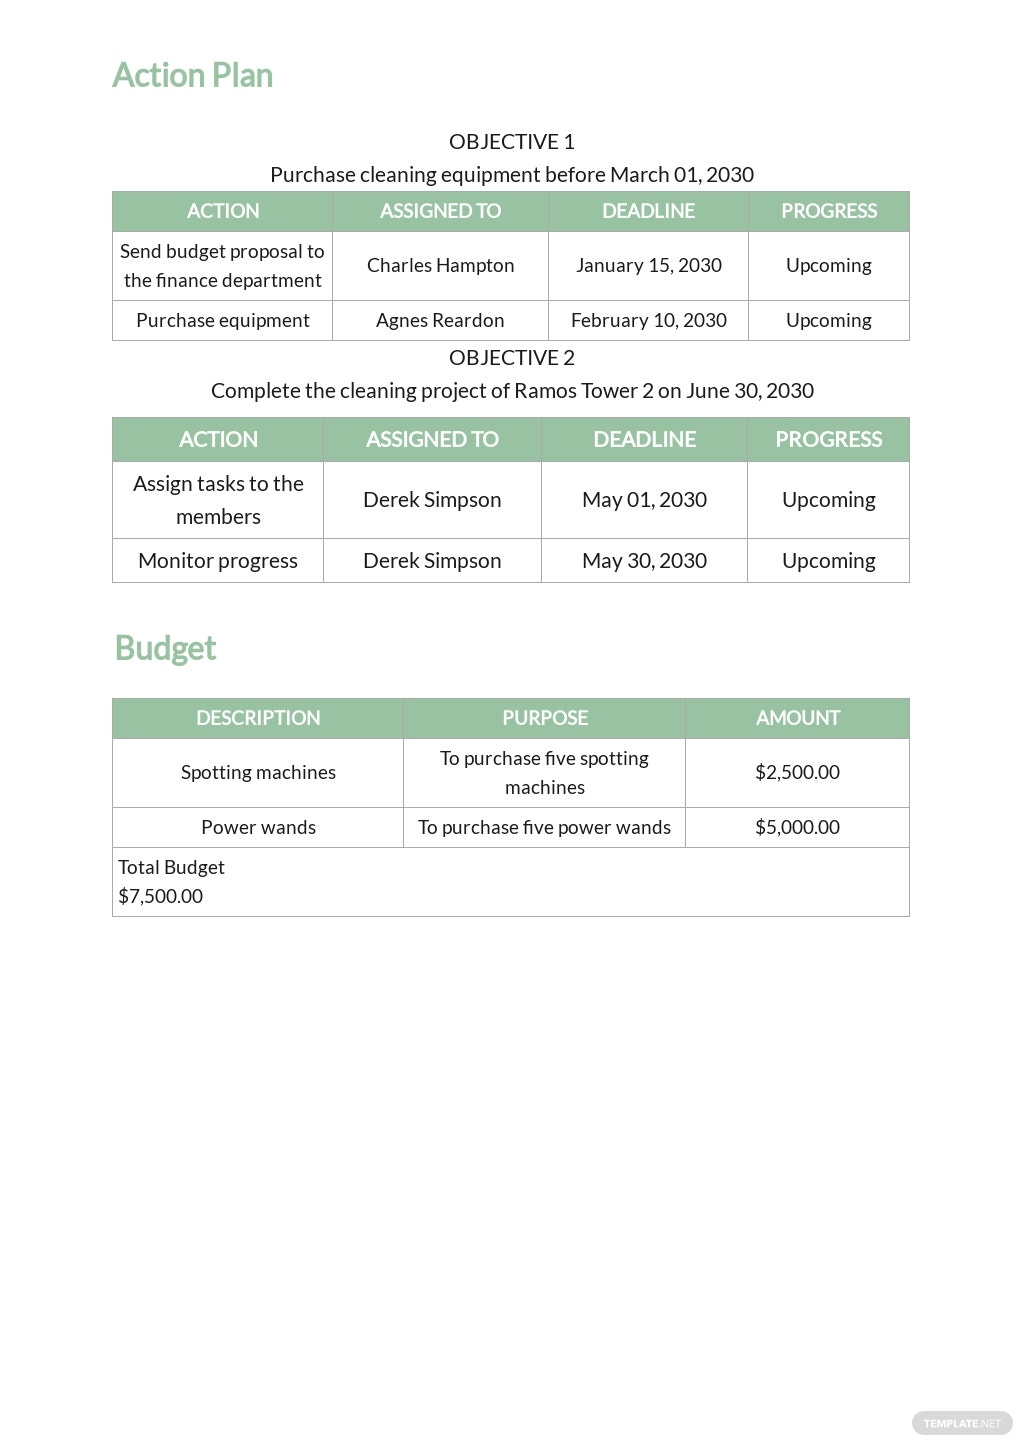 Execution Plan Template for Cleaning Services 3.jpe